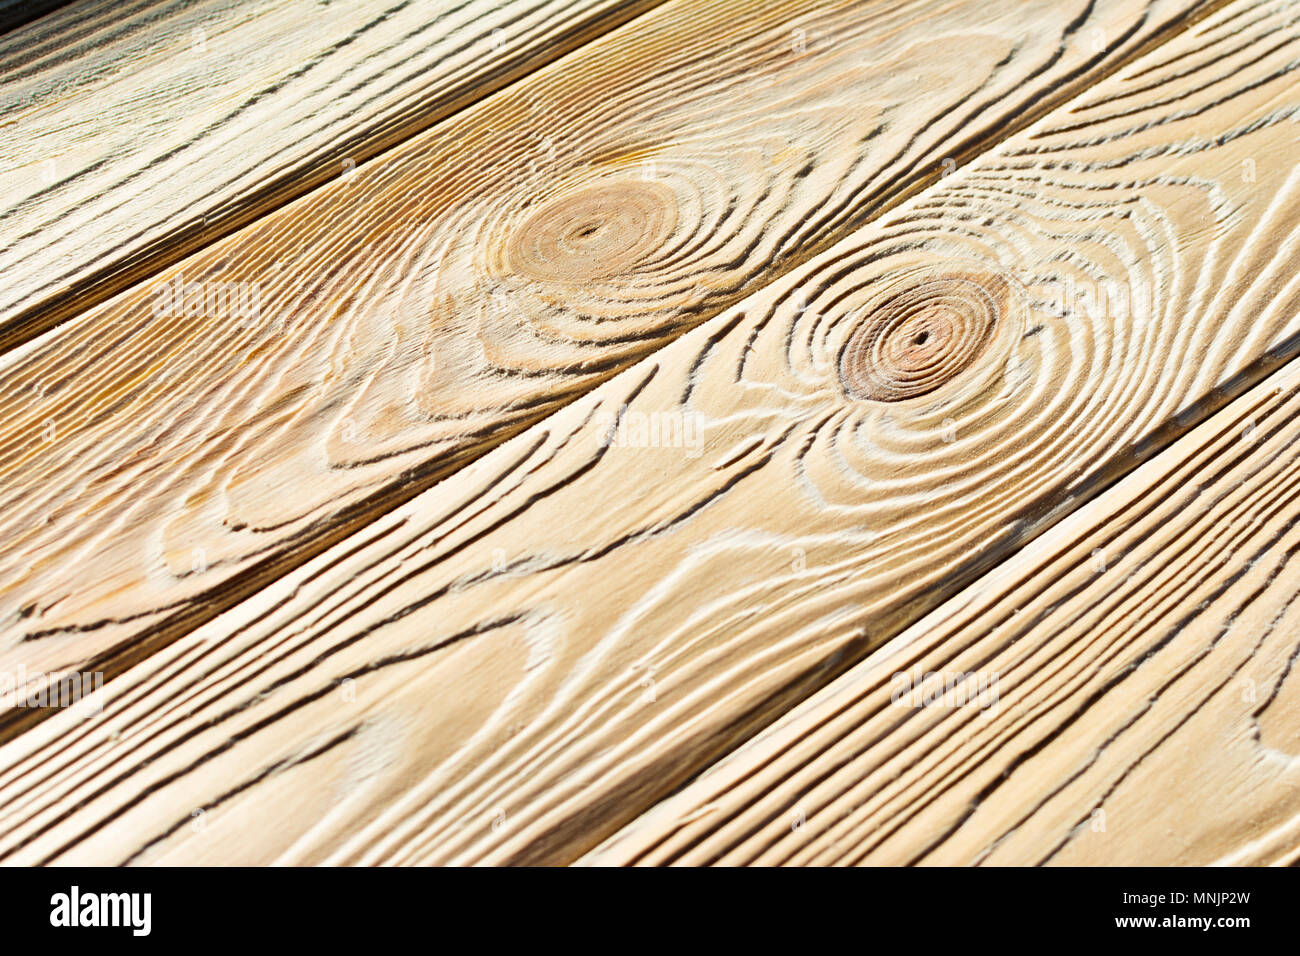 Wood after brashing by angle grinder. - Stock Image